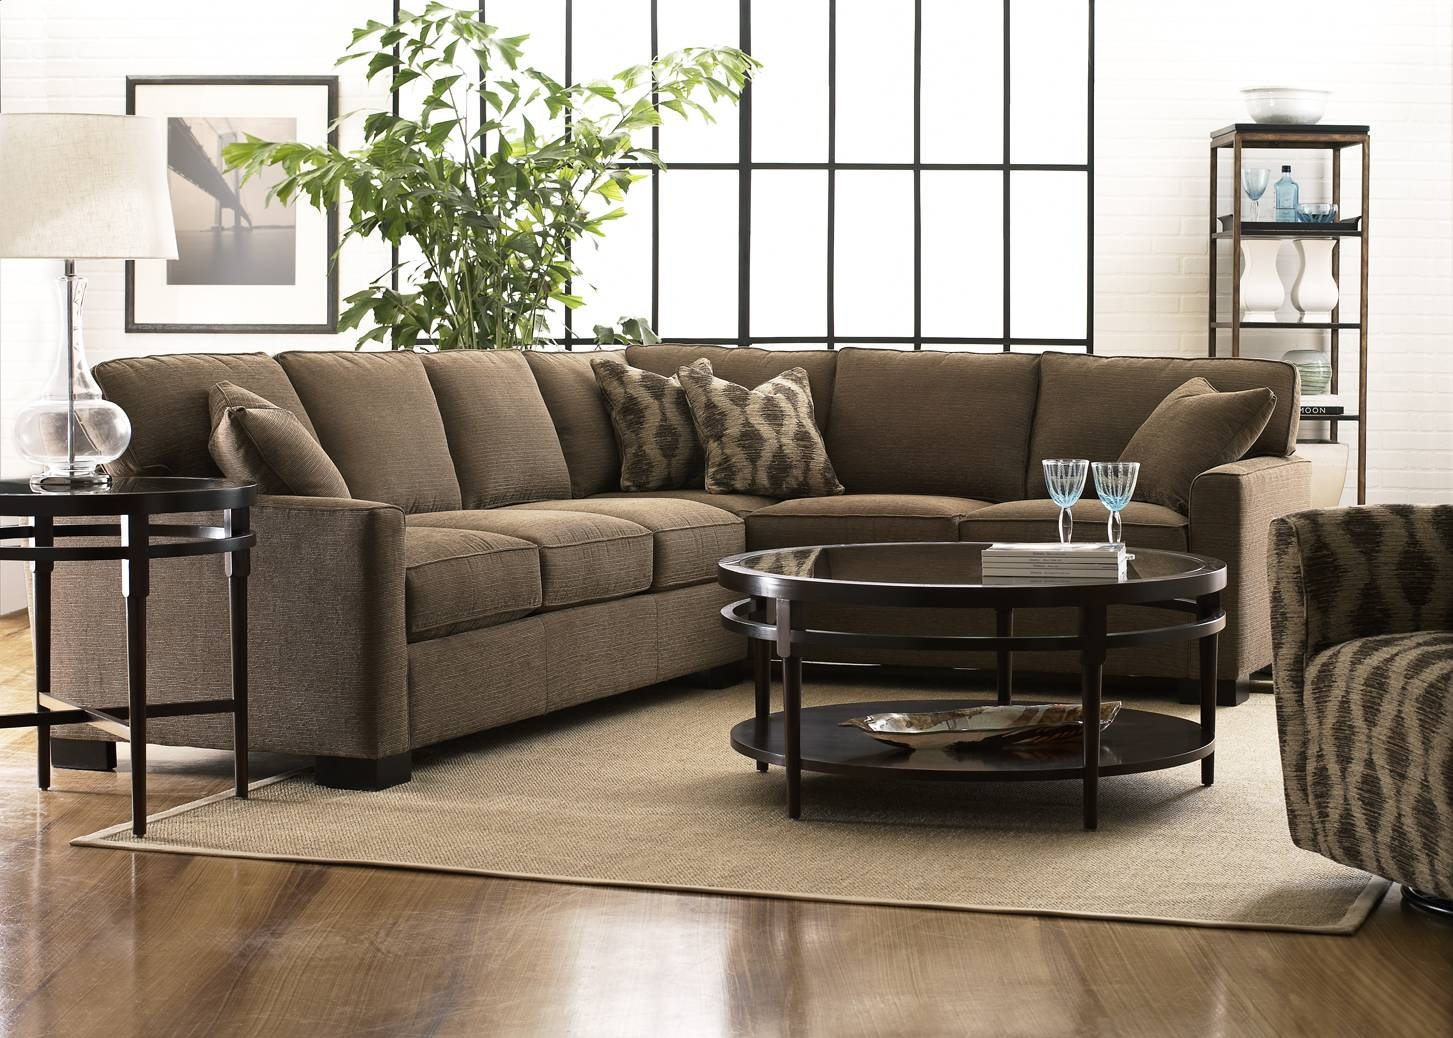 Modern Sectional Sofas For Small Living Rooms Frame Cushion Seat in Modern Sectional Sofas For Small Spaces (Image 14 of 25)